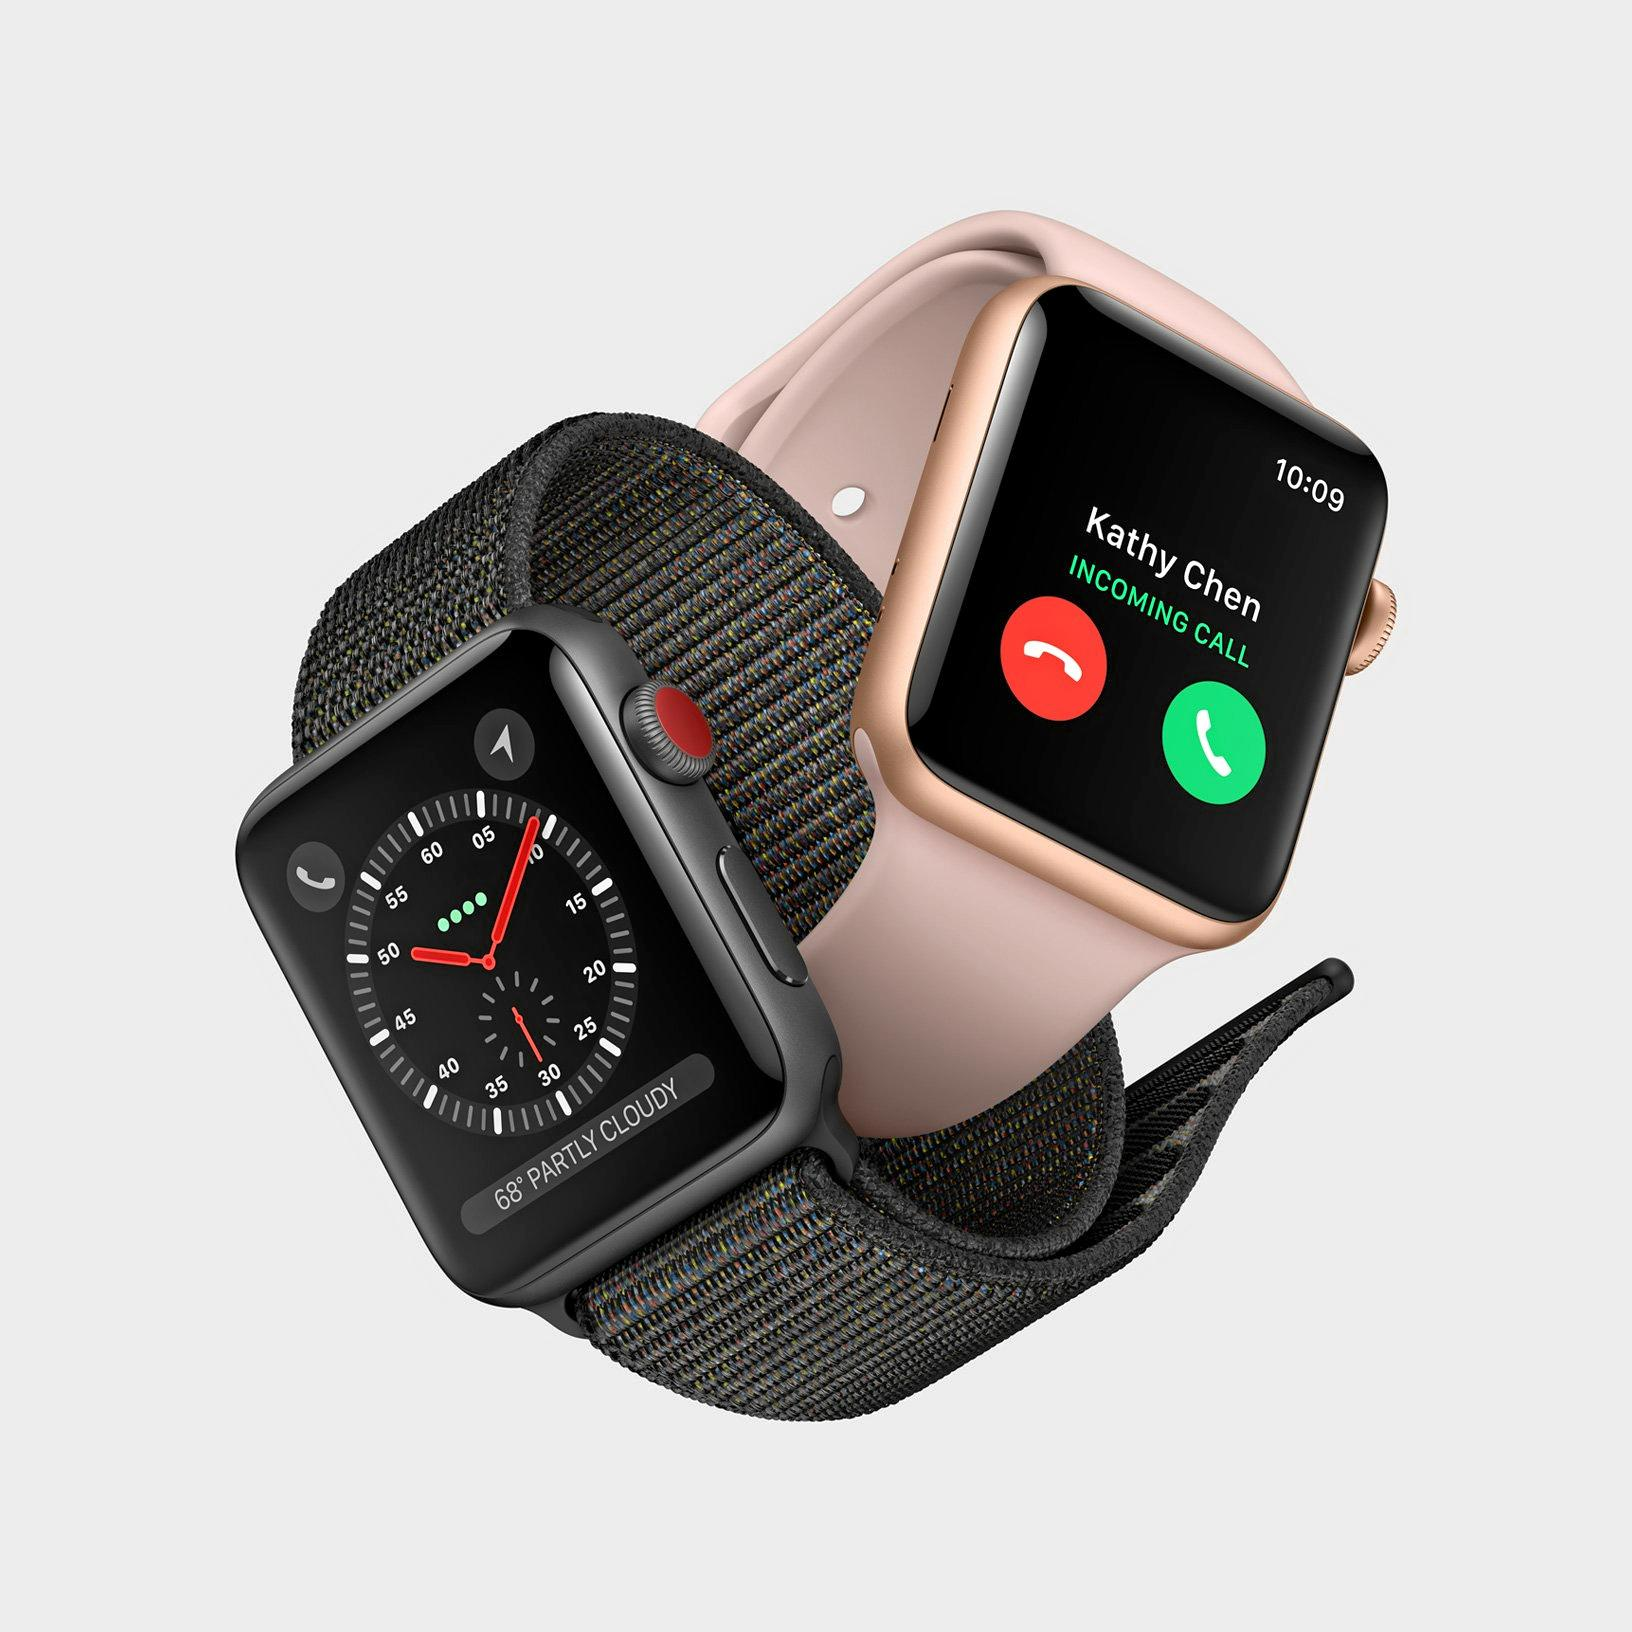 Apple Watch Series 3 features a clever antenna design that uses the display itself to transmit and receive.